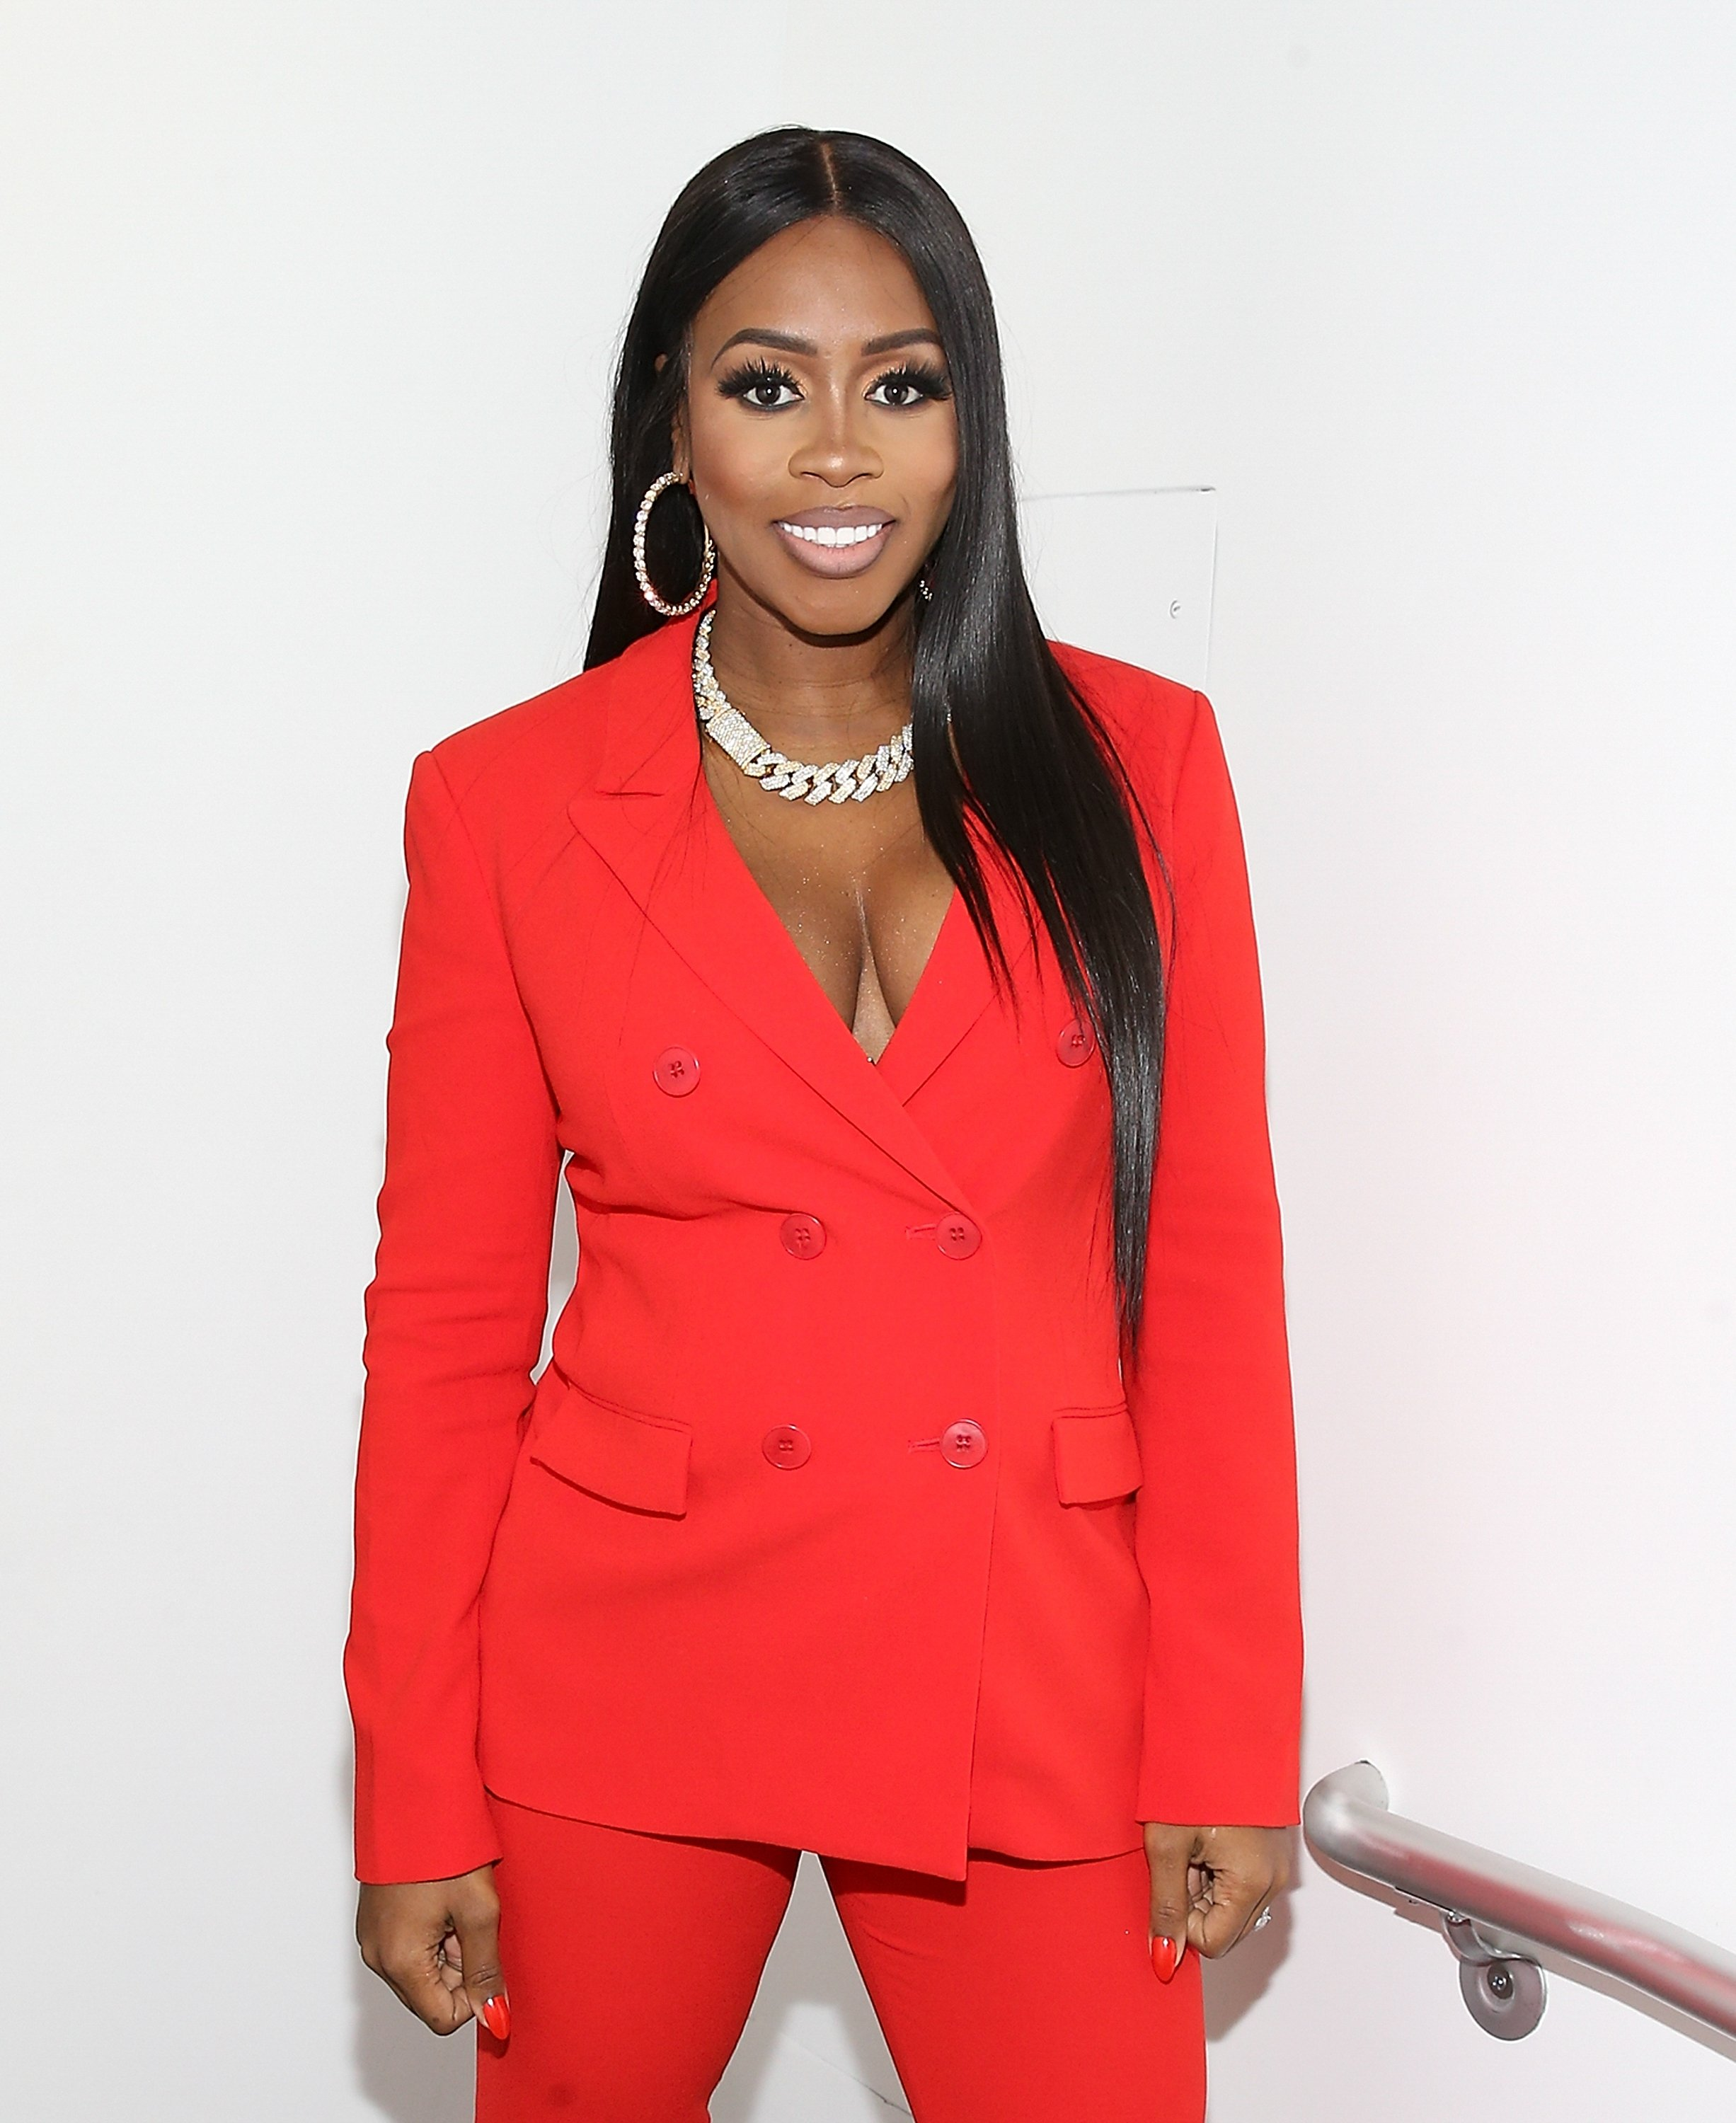 """Remy Ma at the """"Our Vote, Our Power"""" Midterm Election Special on October 22, 2018 in New York City   Source: Getty Images/GlobalImagesUkraine"""